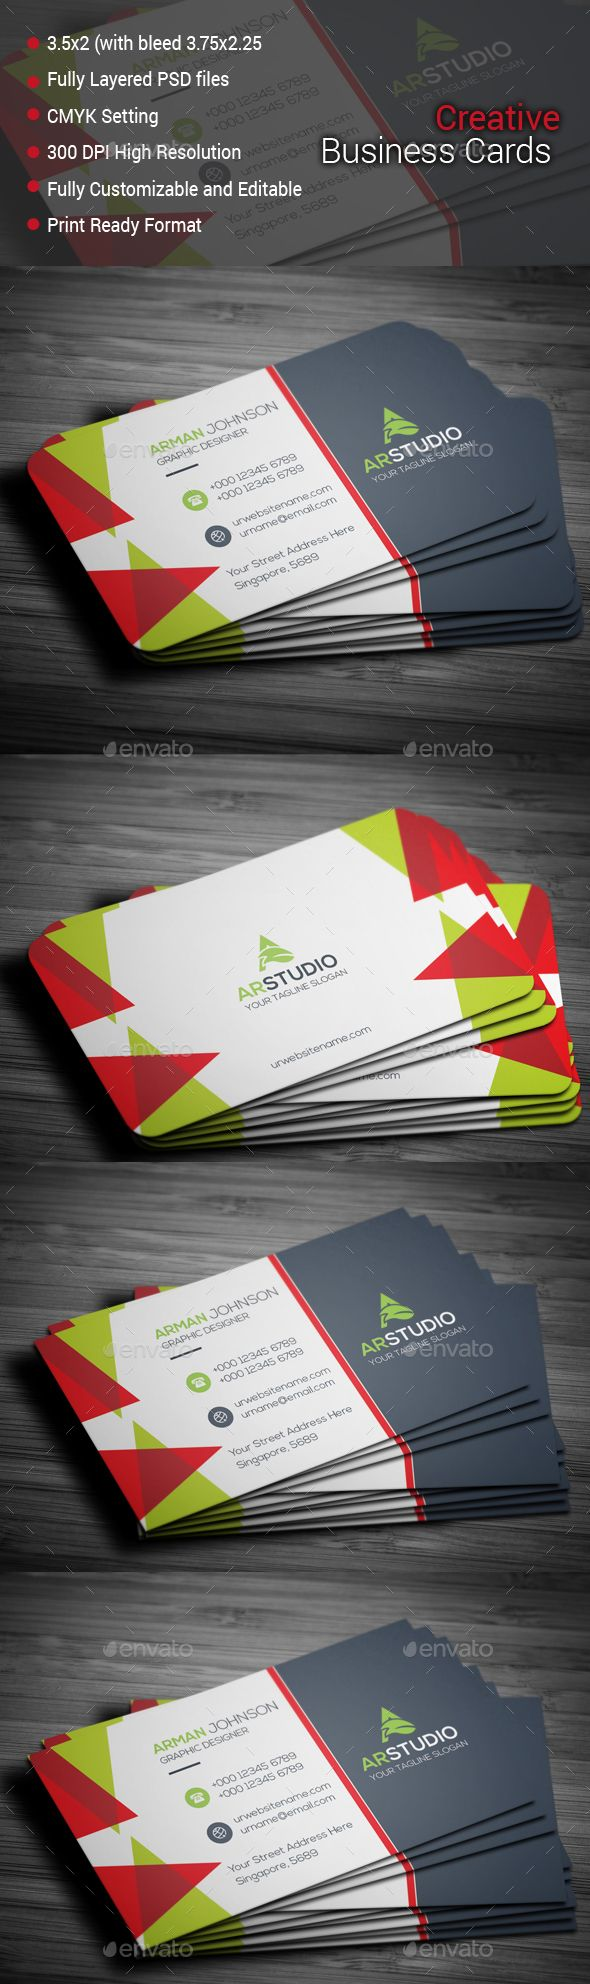 3023 best nice business cards on pinterest images on pinterest 3023 best nice business cards on pinterest images on pinterest business card design lipsense business cards and business cards reheart Image collections